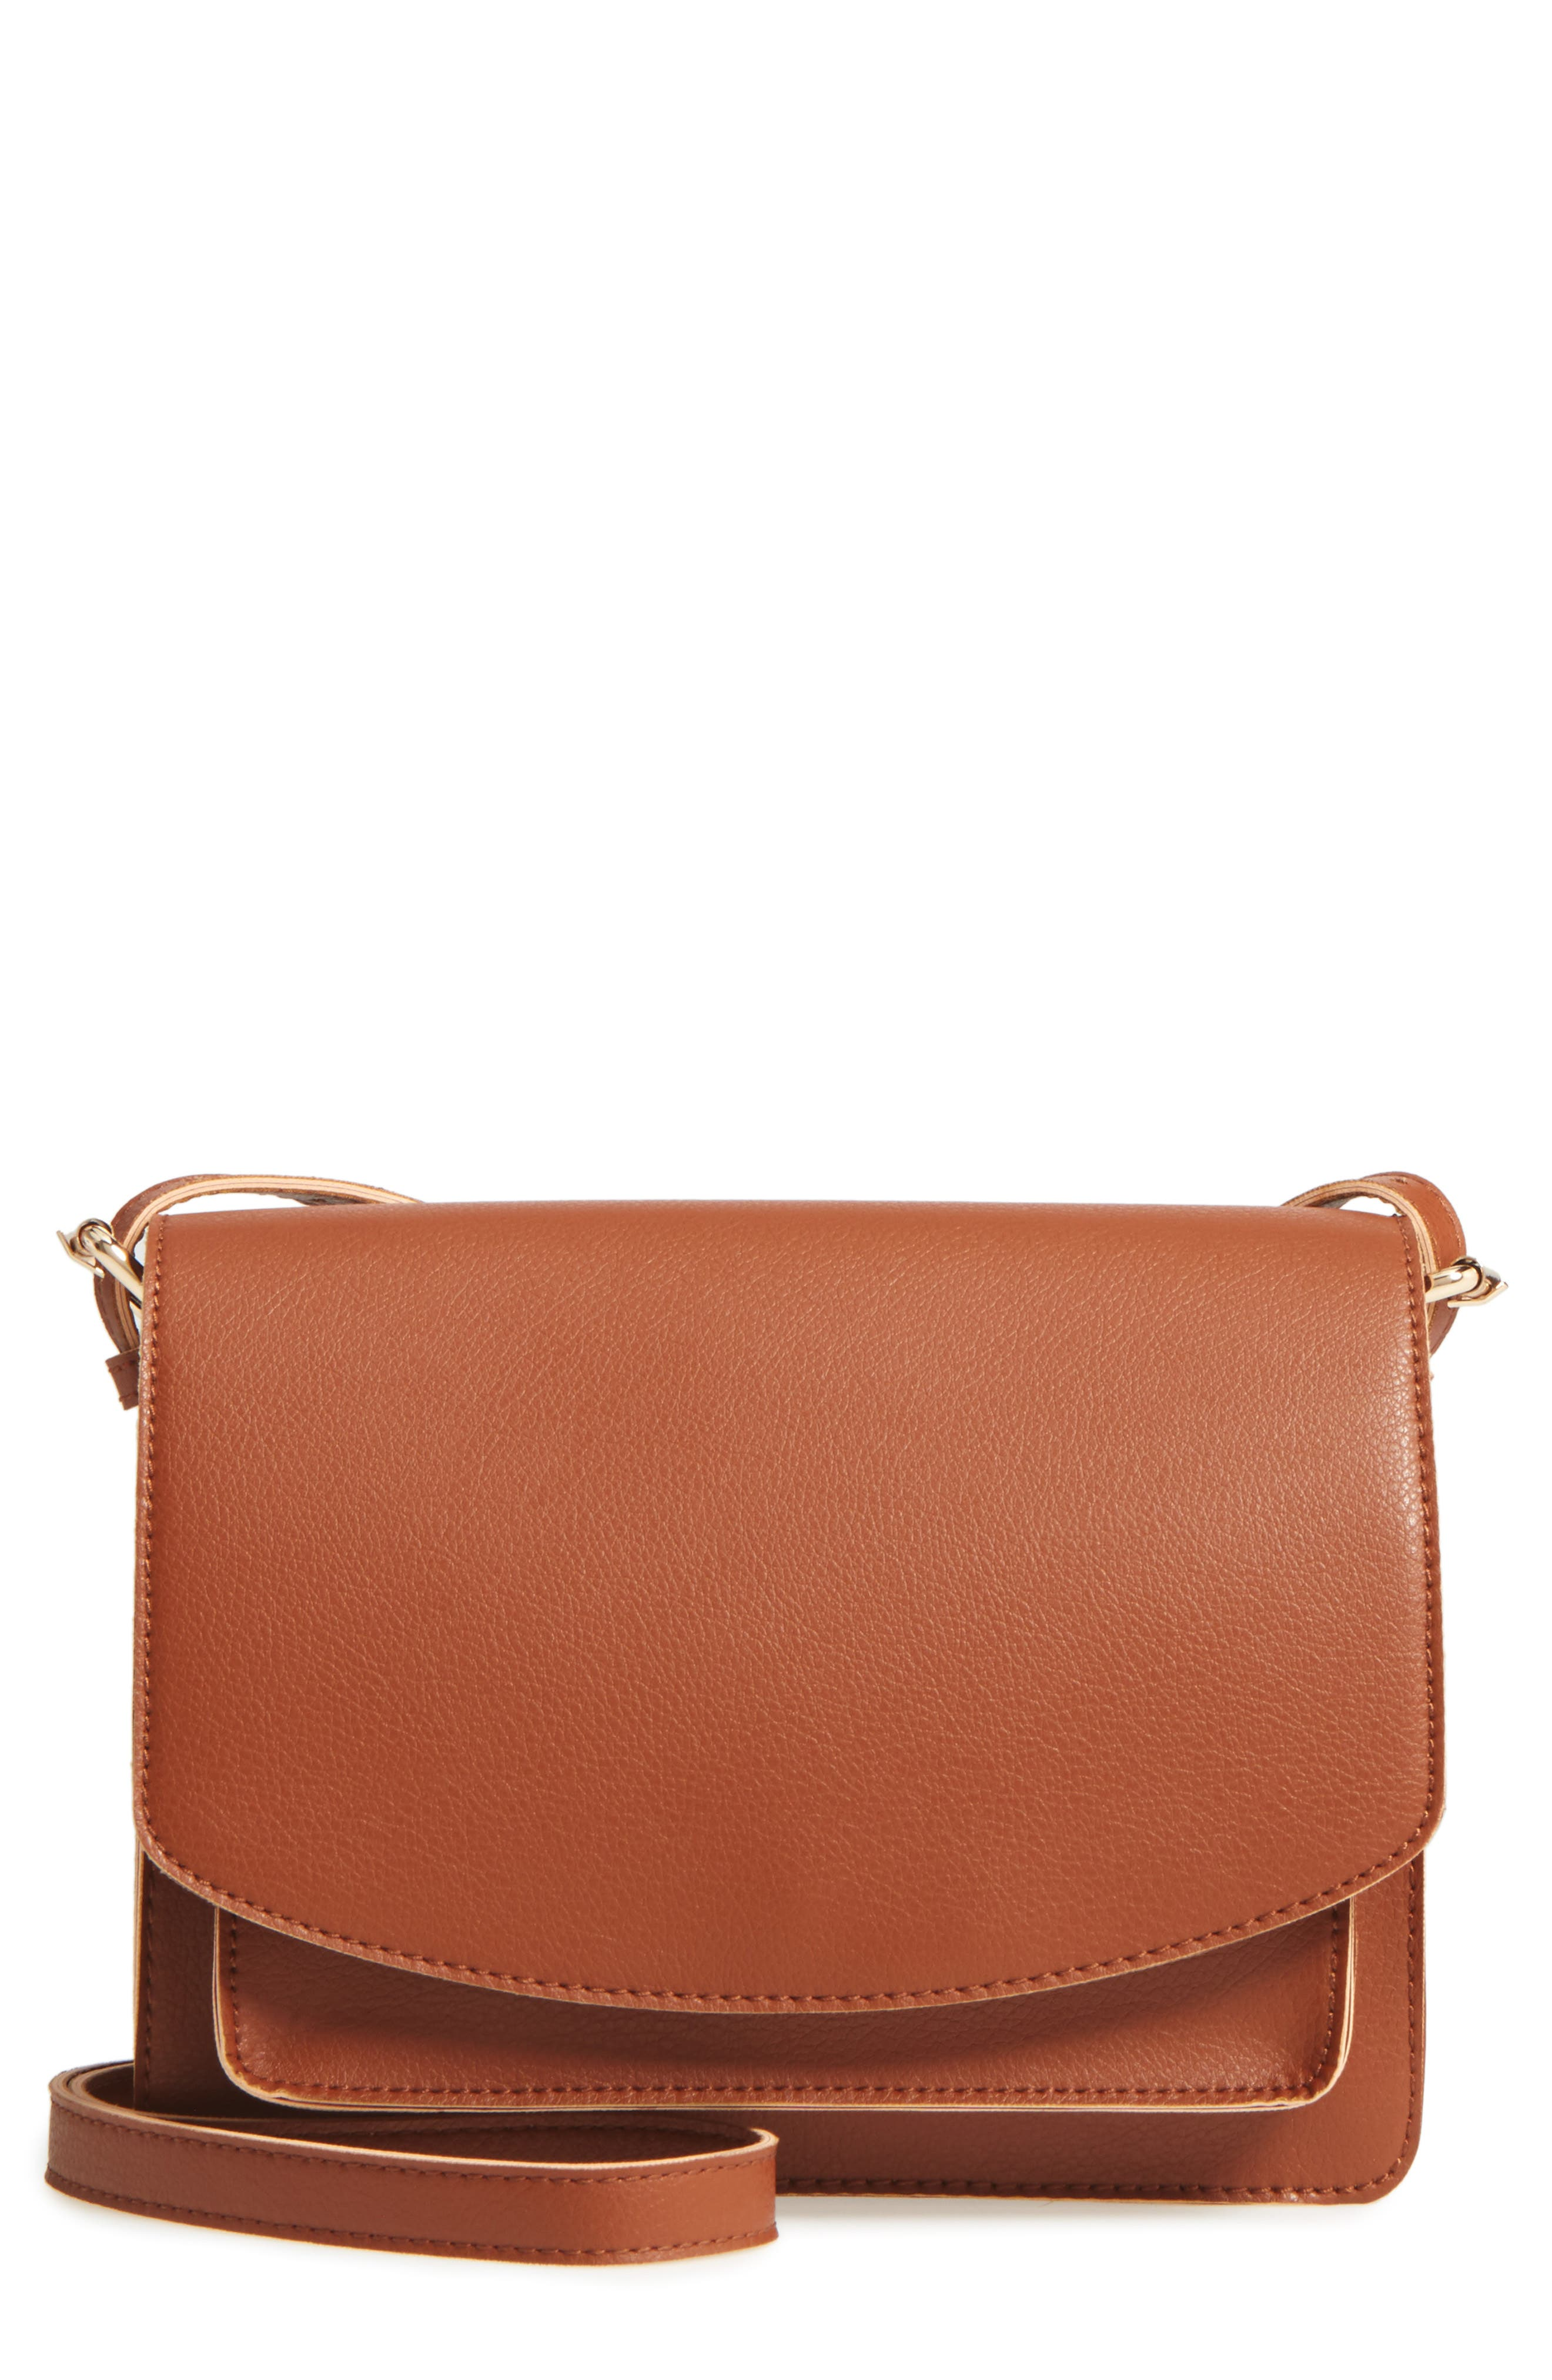 'Michelle' Faux Leather Crossbody Bag,                         Main,                         color, New Cognac